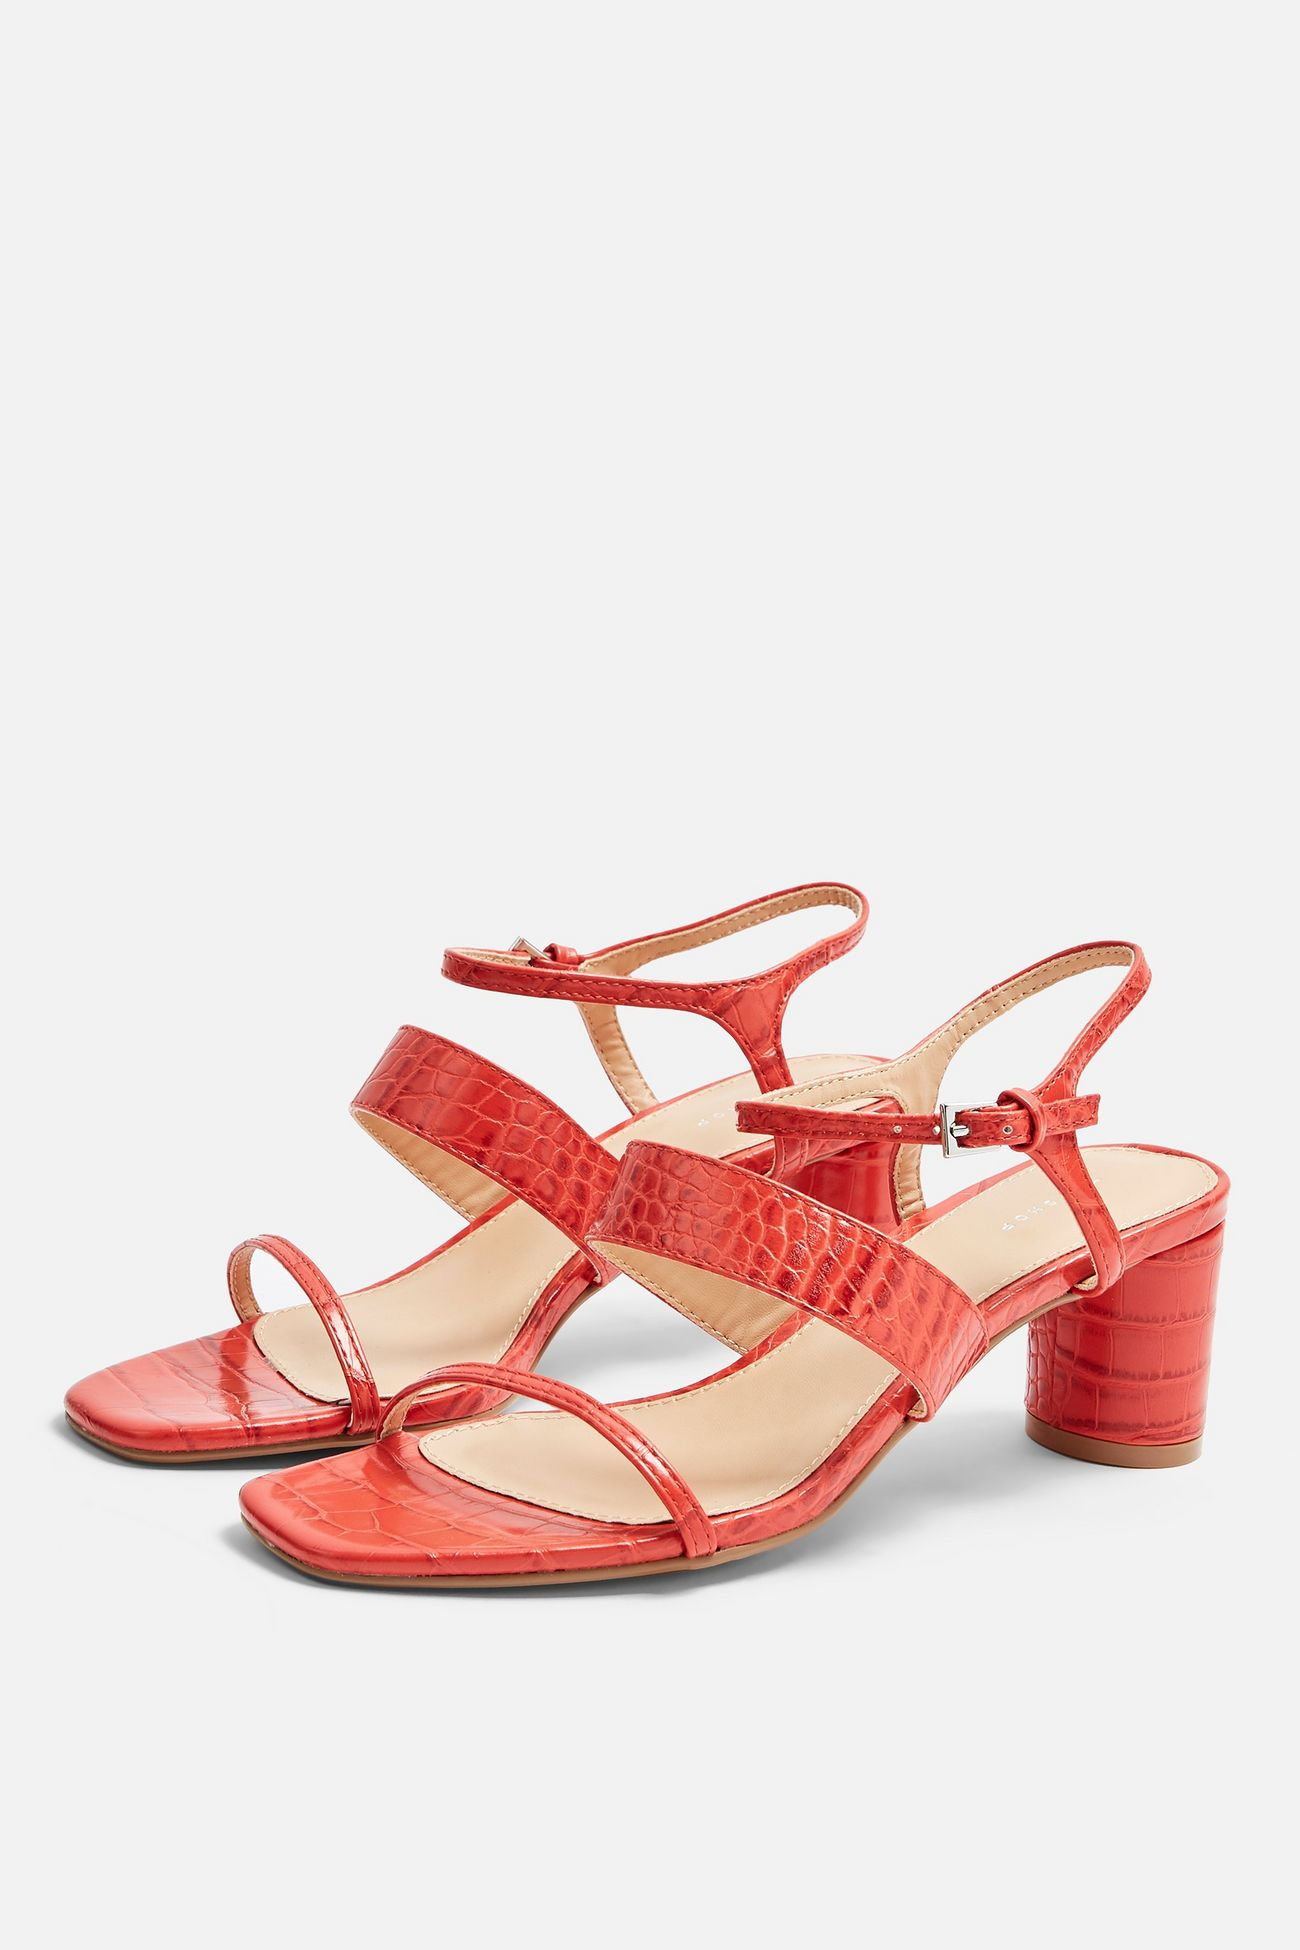 TopShop Dita  red strap sandals , $52/£32